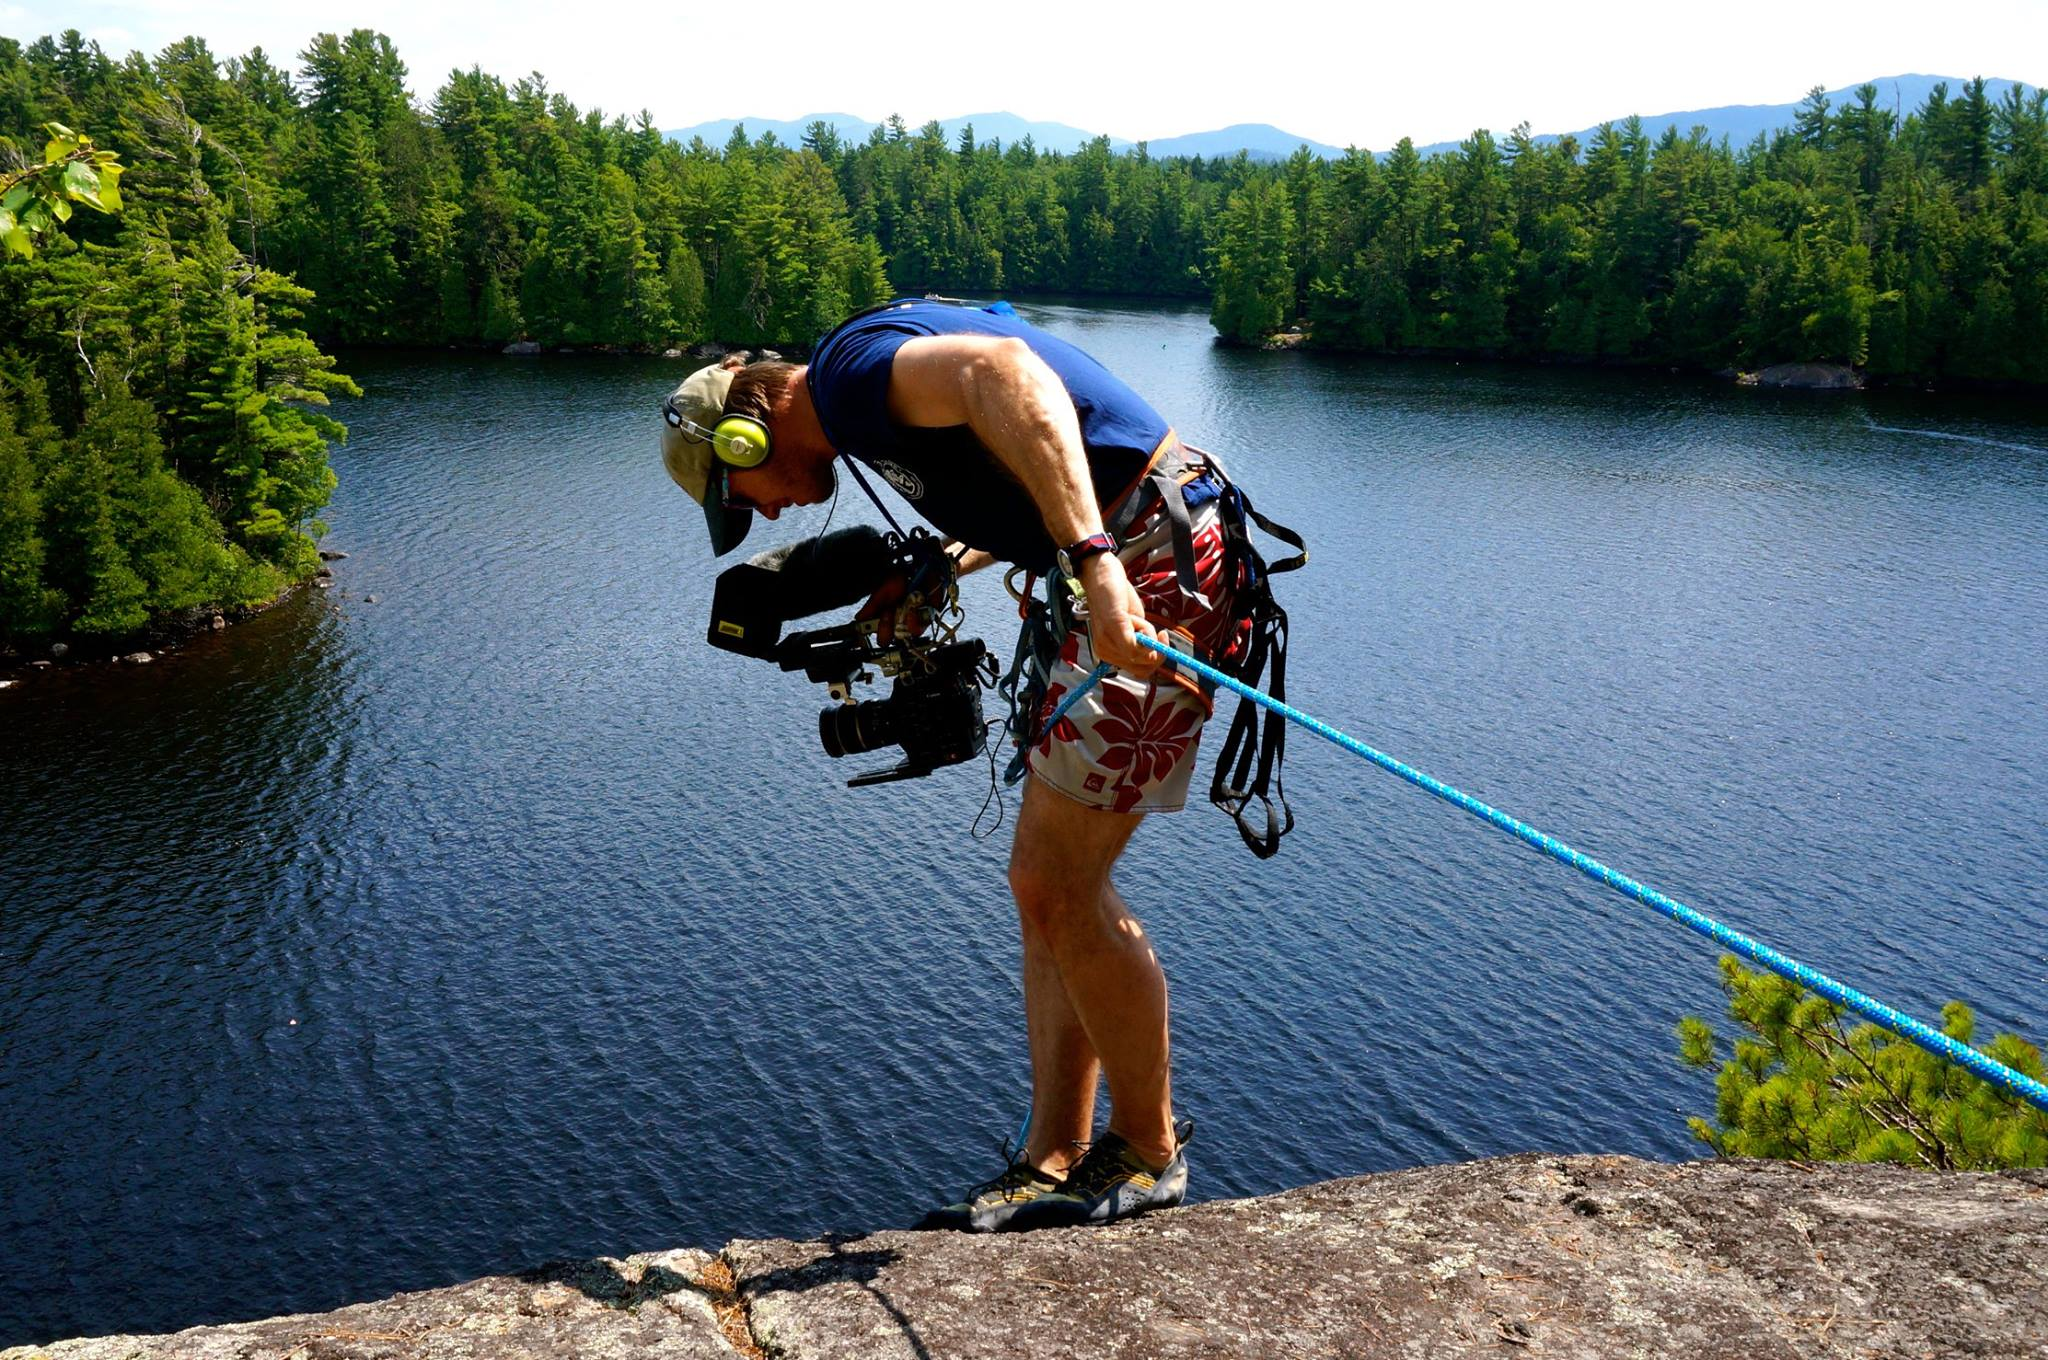 Rufus Lusk hanging off a cliff to capture a camper rock climbing over a lake in the Adirondacks